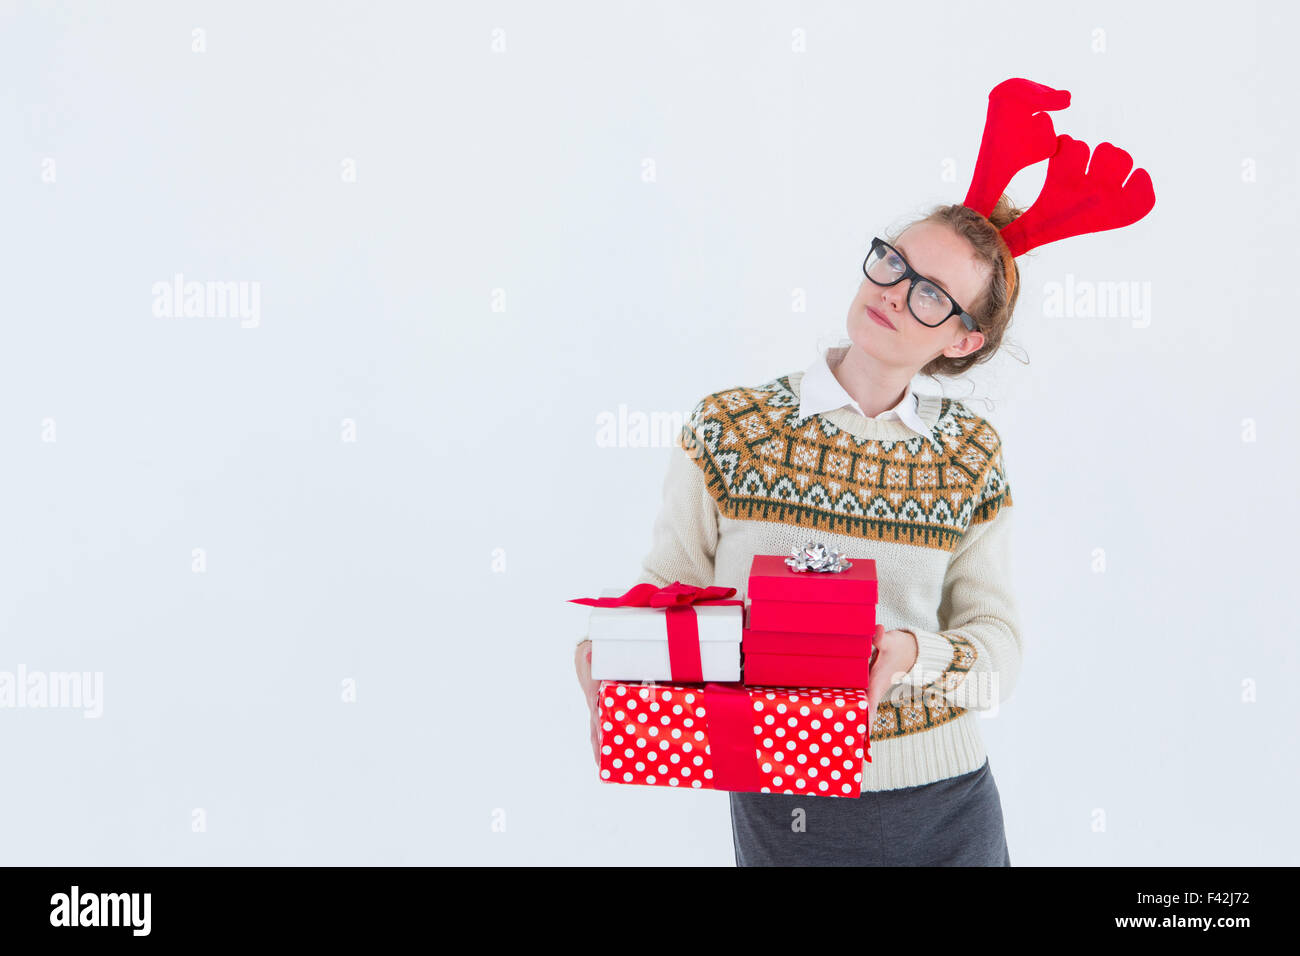 Thoughtful geeky hipster holding presents - Stock Image